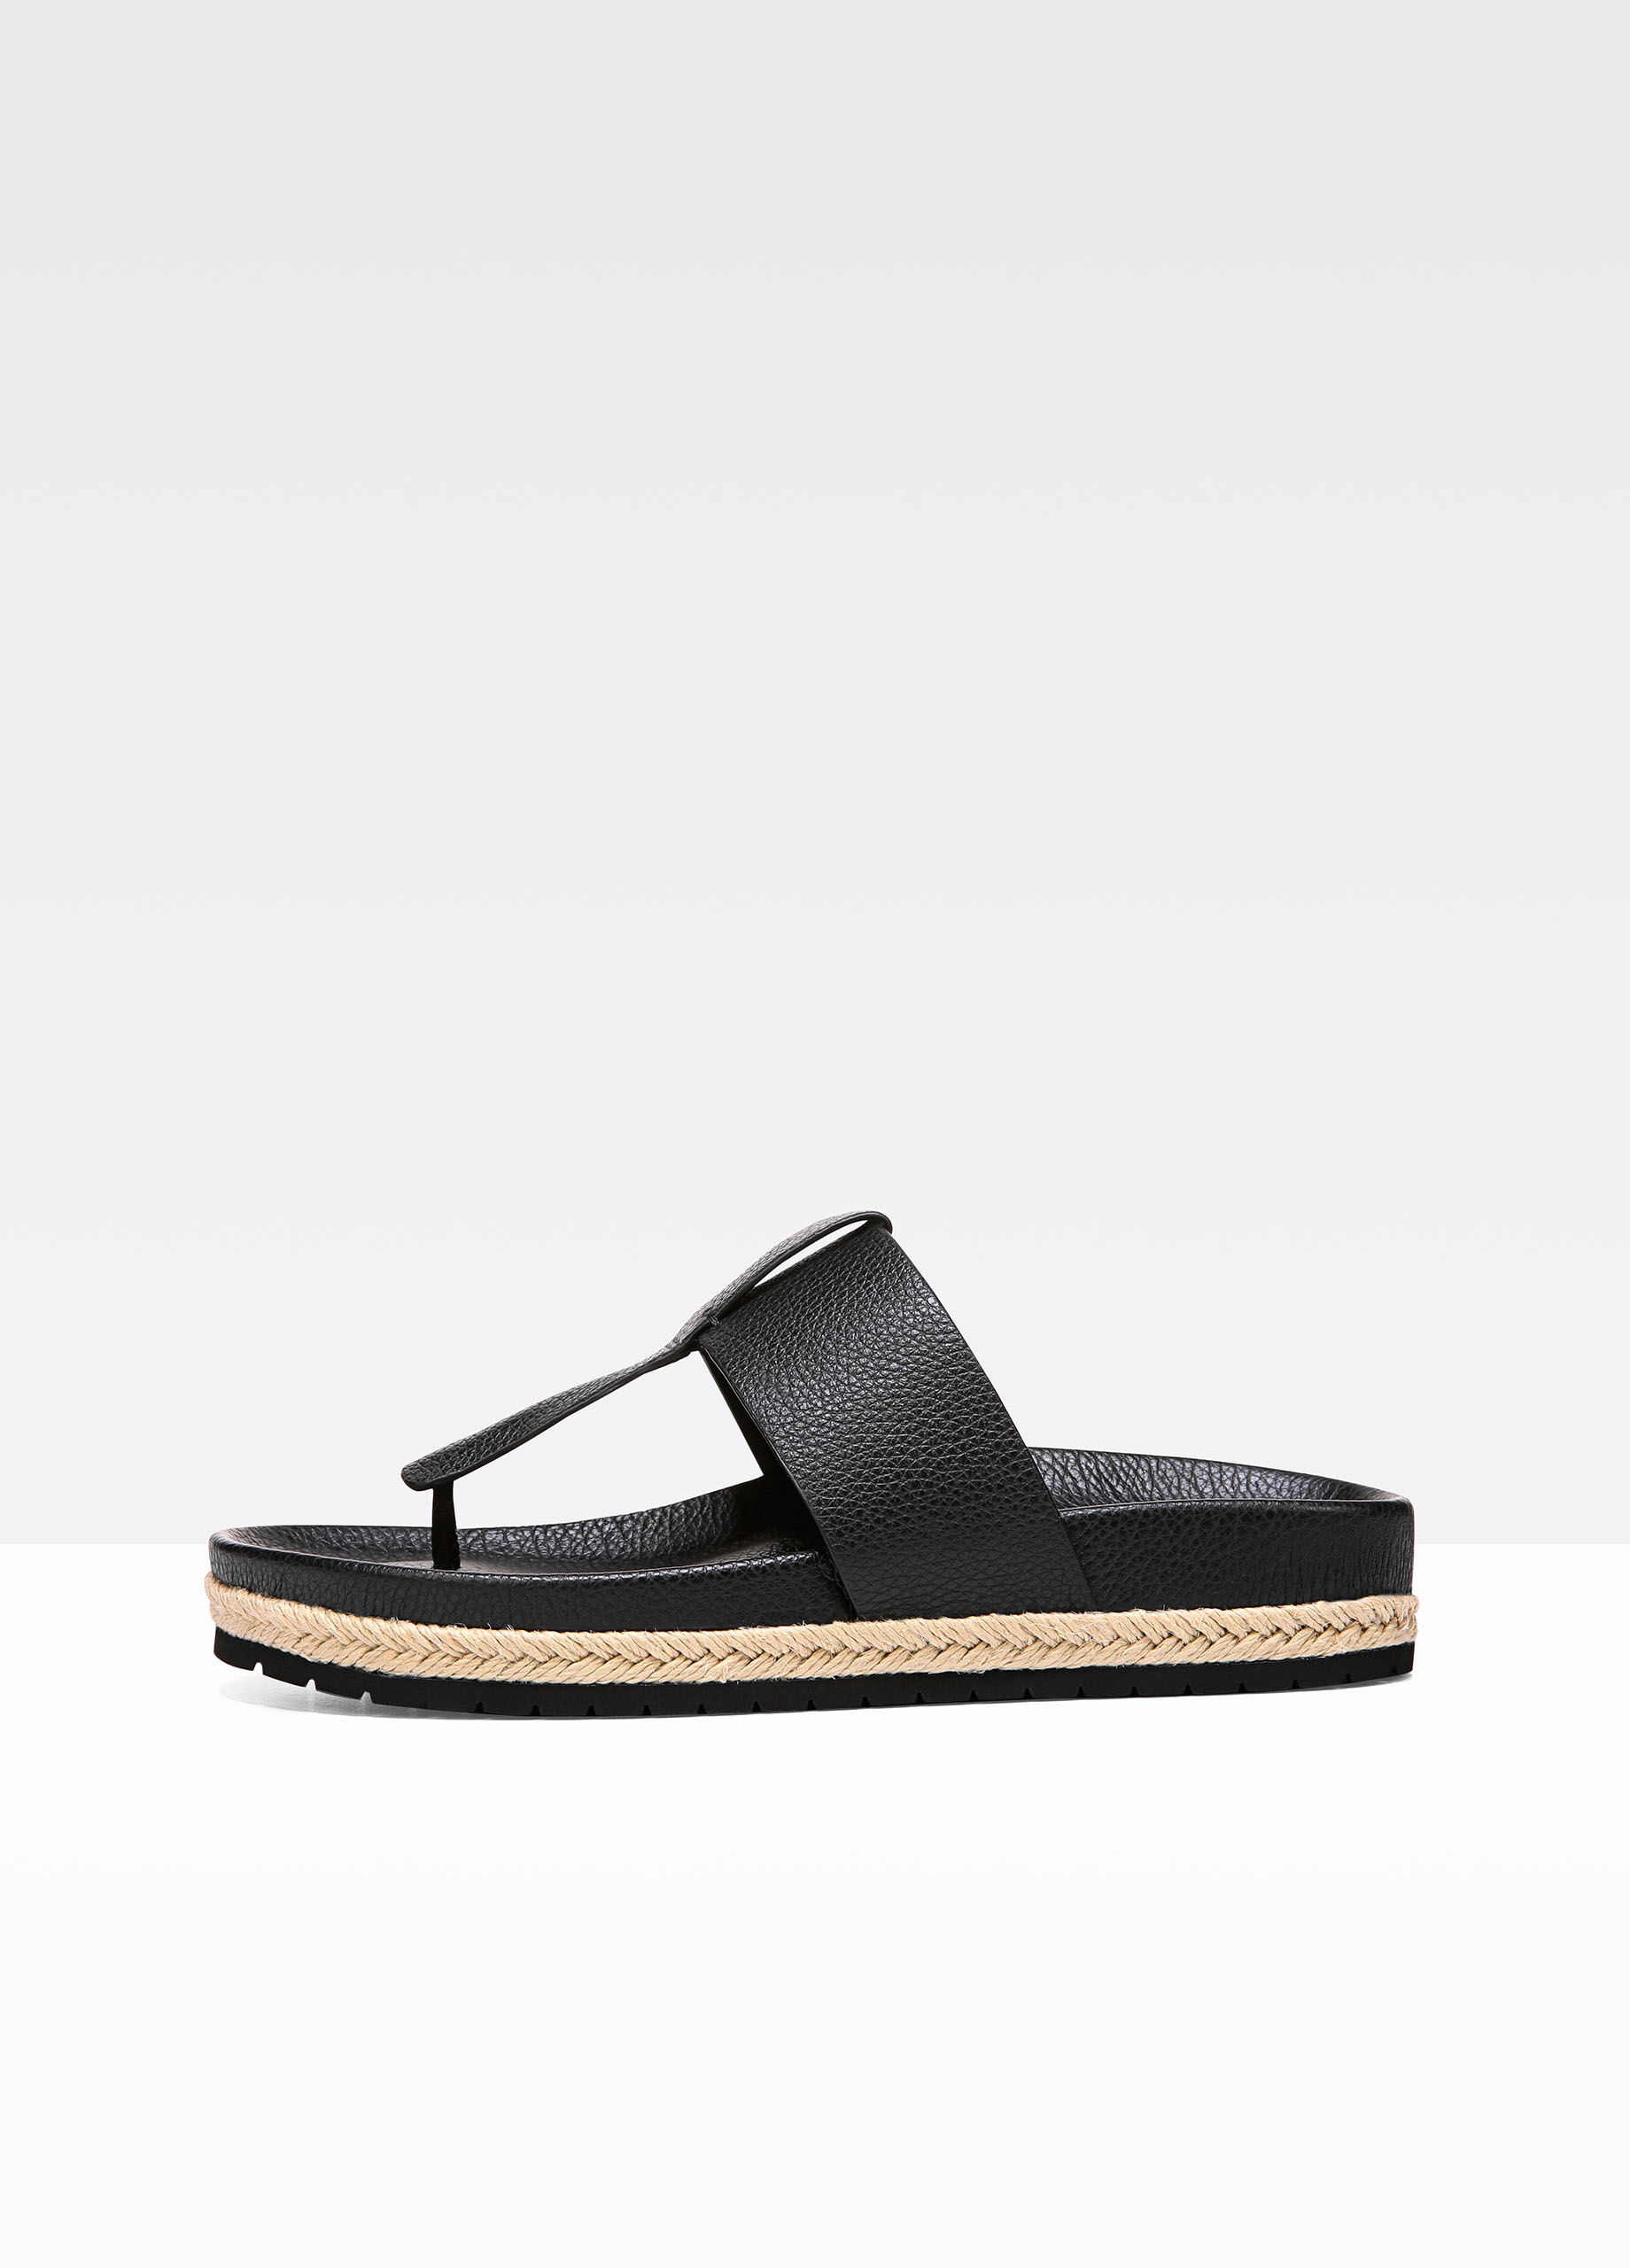 Buy leather slip on sandals cheap,up to